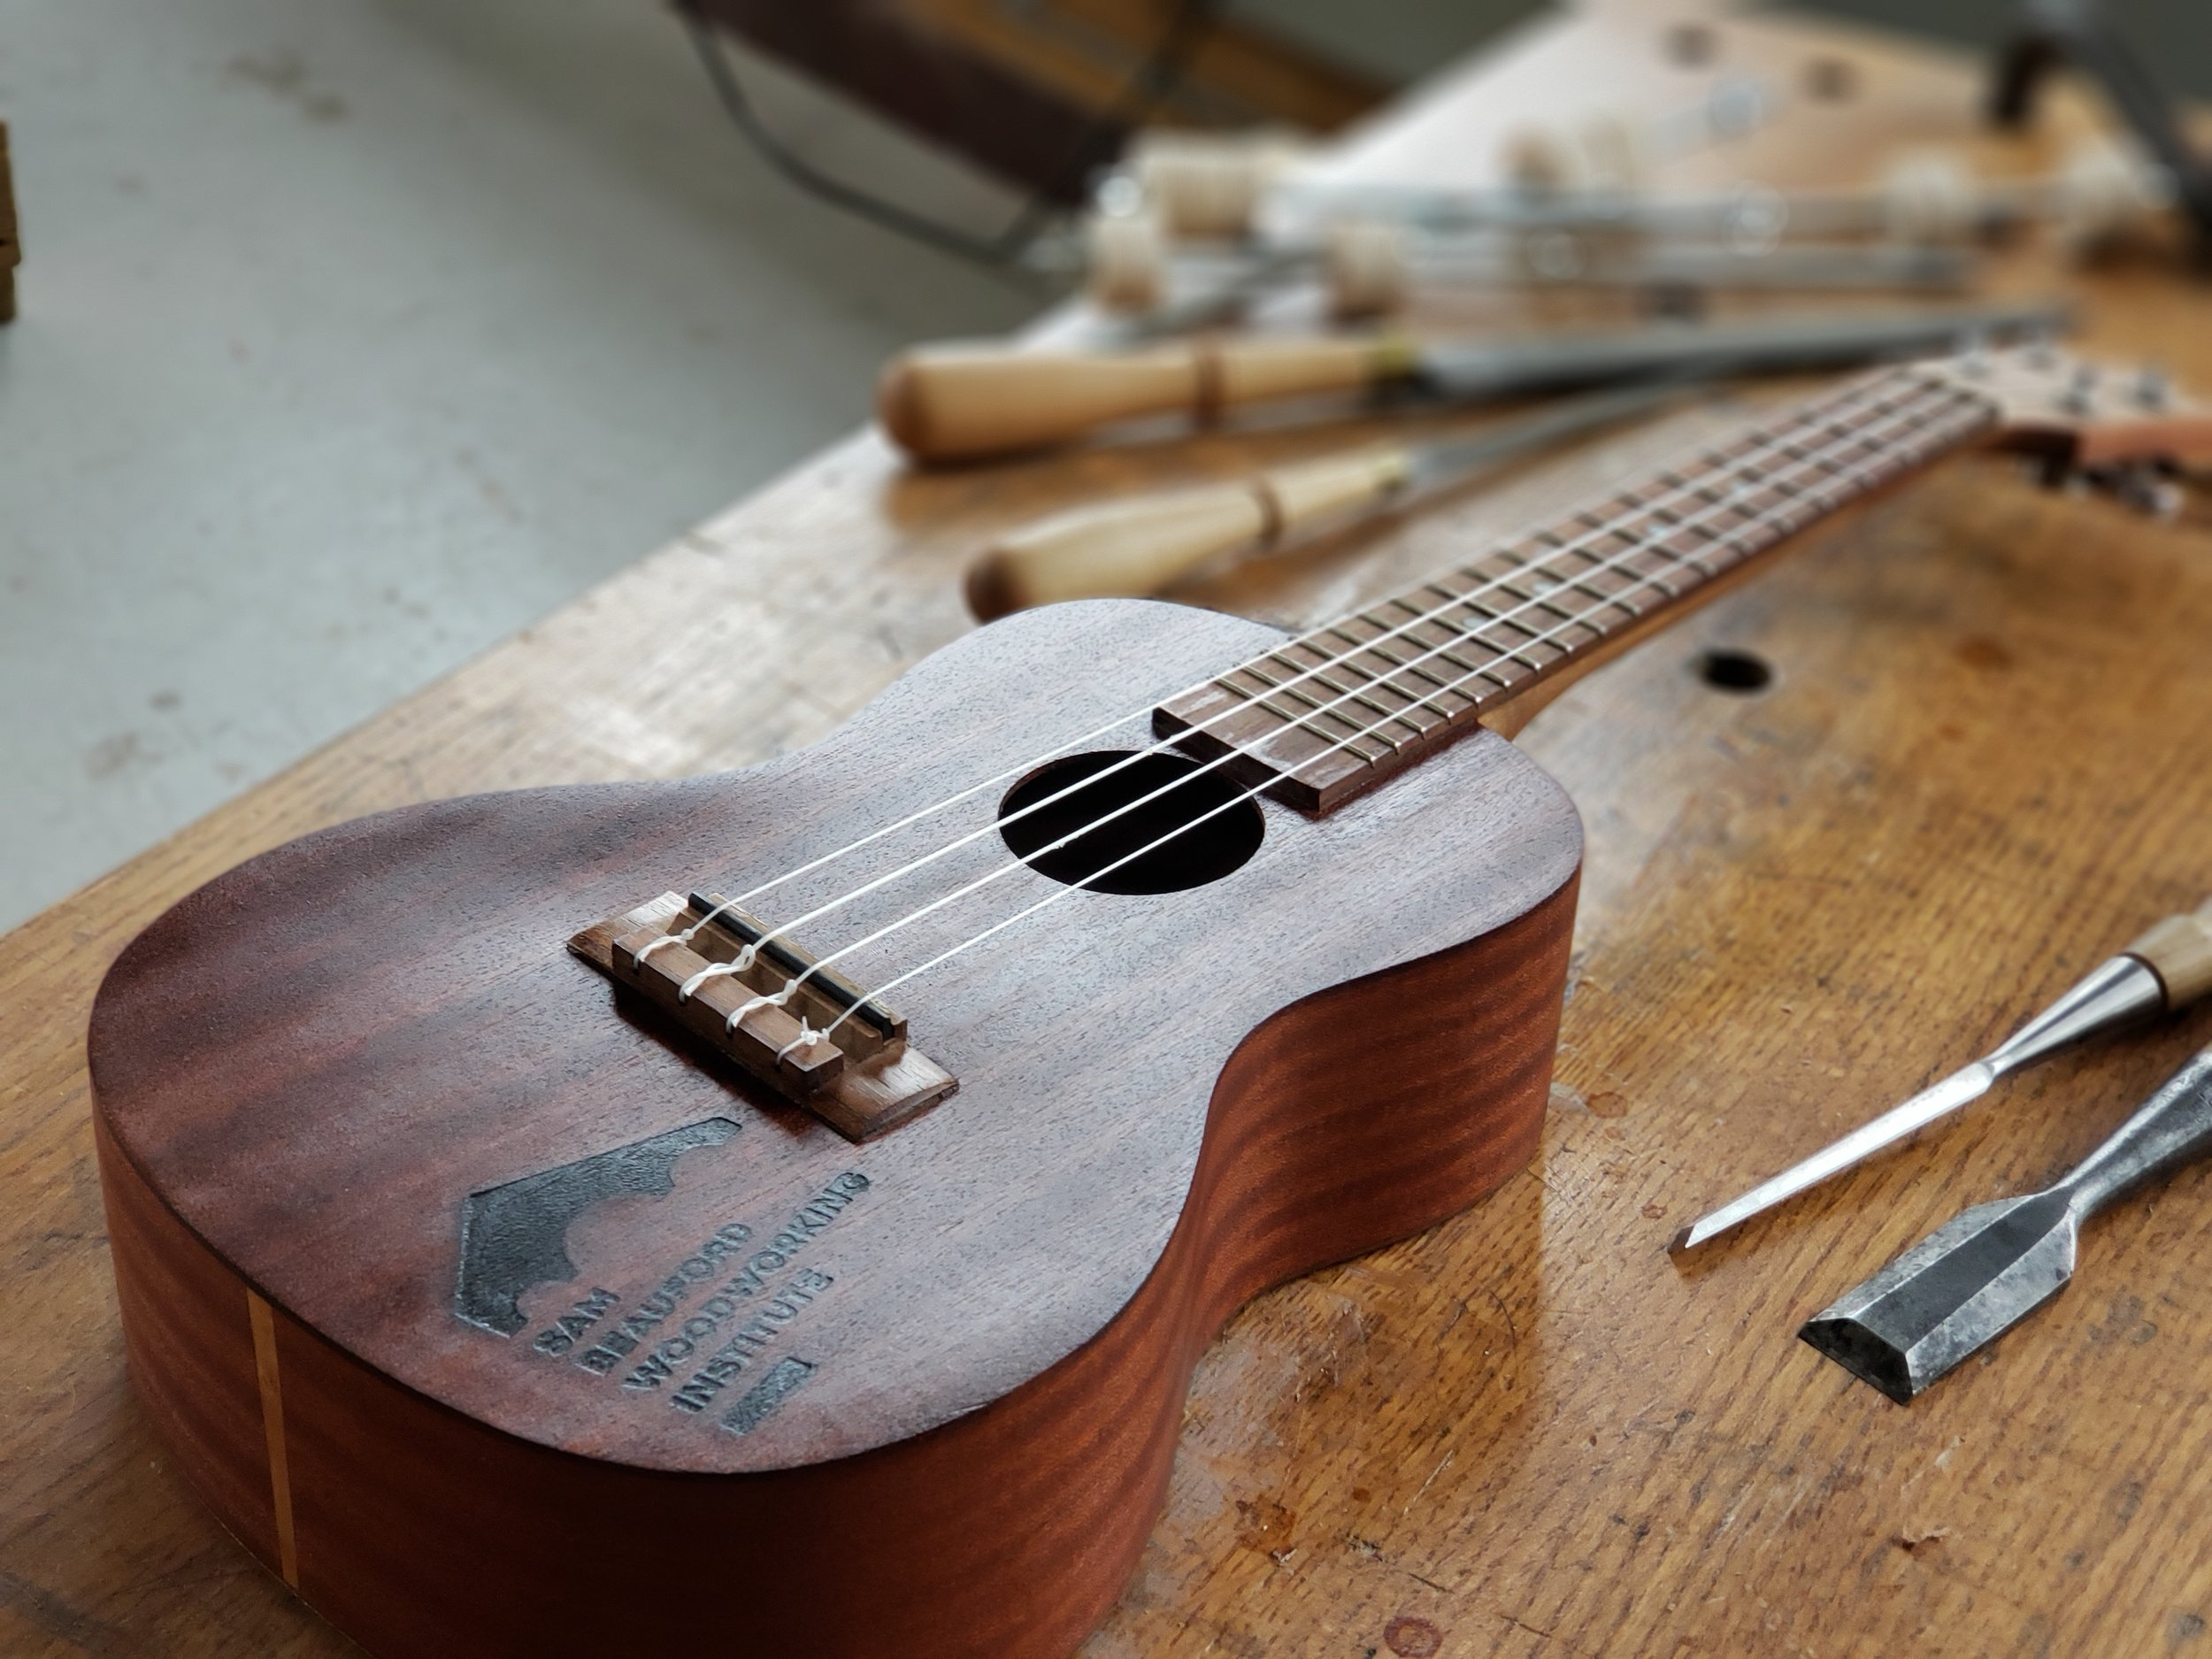 Build a Ukulele with Gary Zimnicki of Zimnicki Guitars